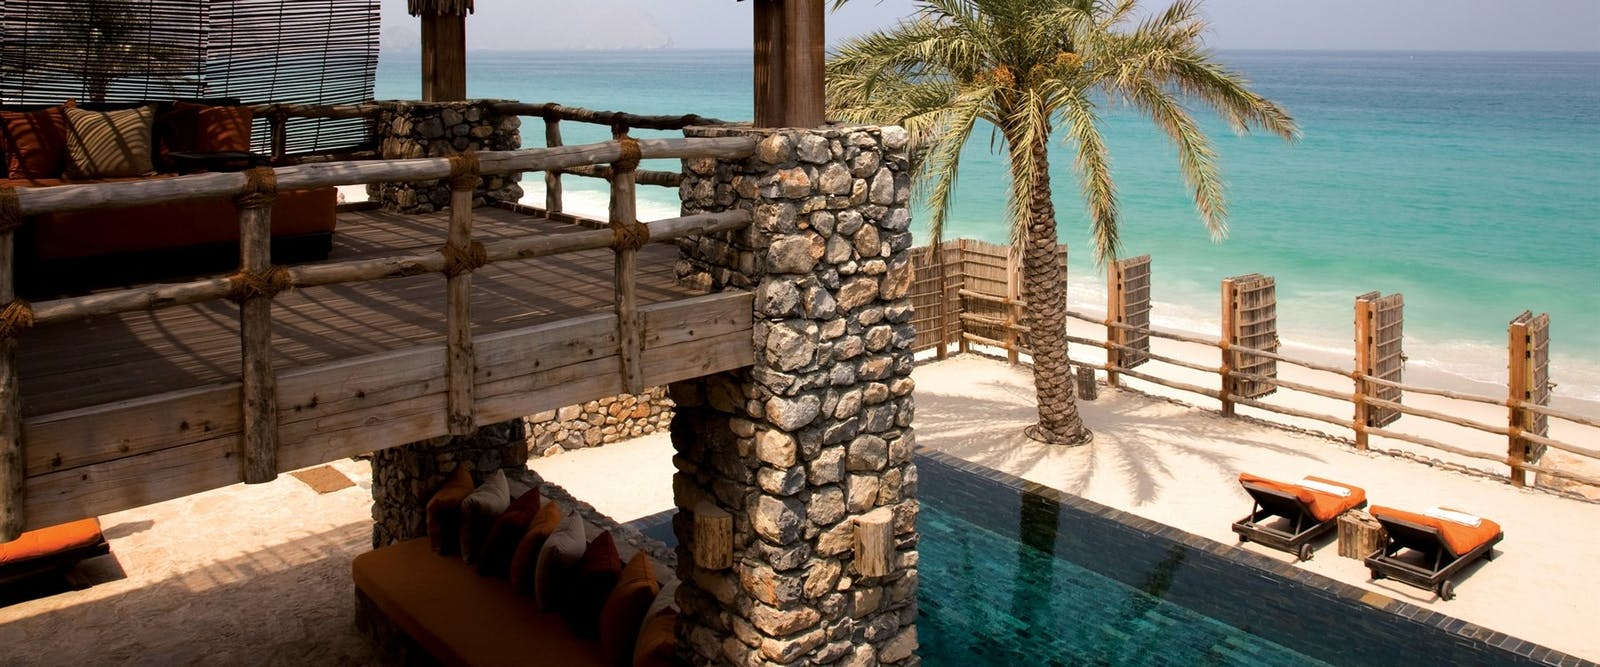 Bedroom Balcony at Private Retreats and Reserve at Six Senses Zighy Bay